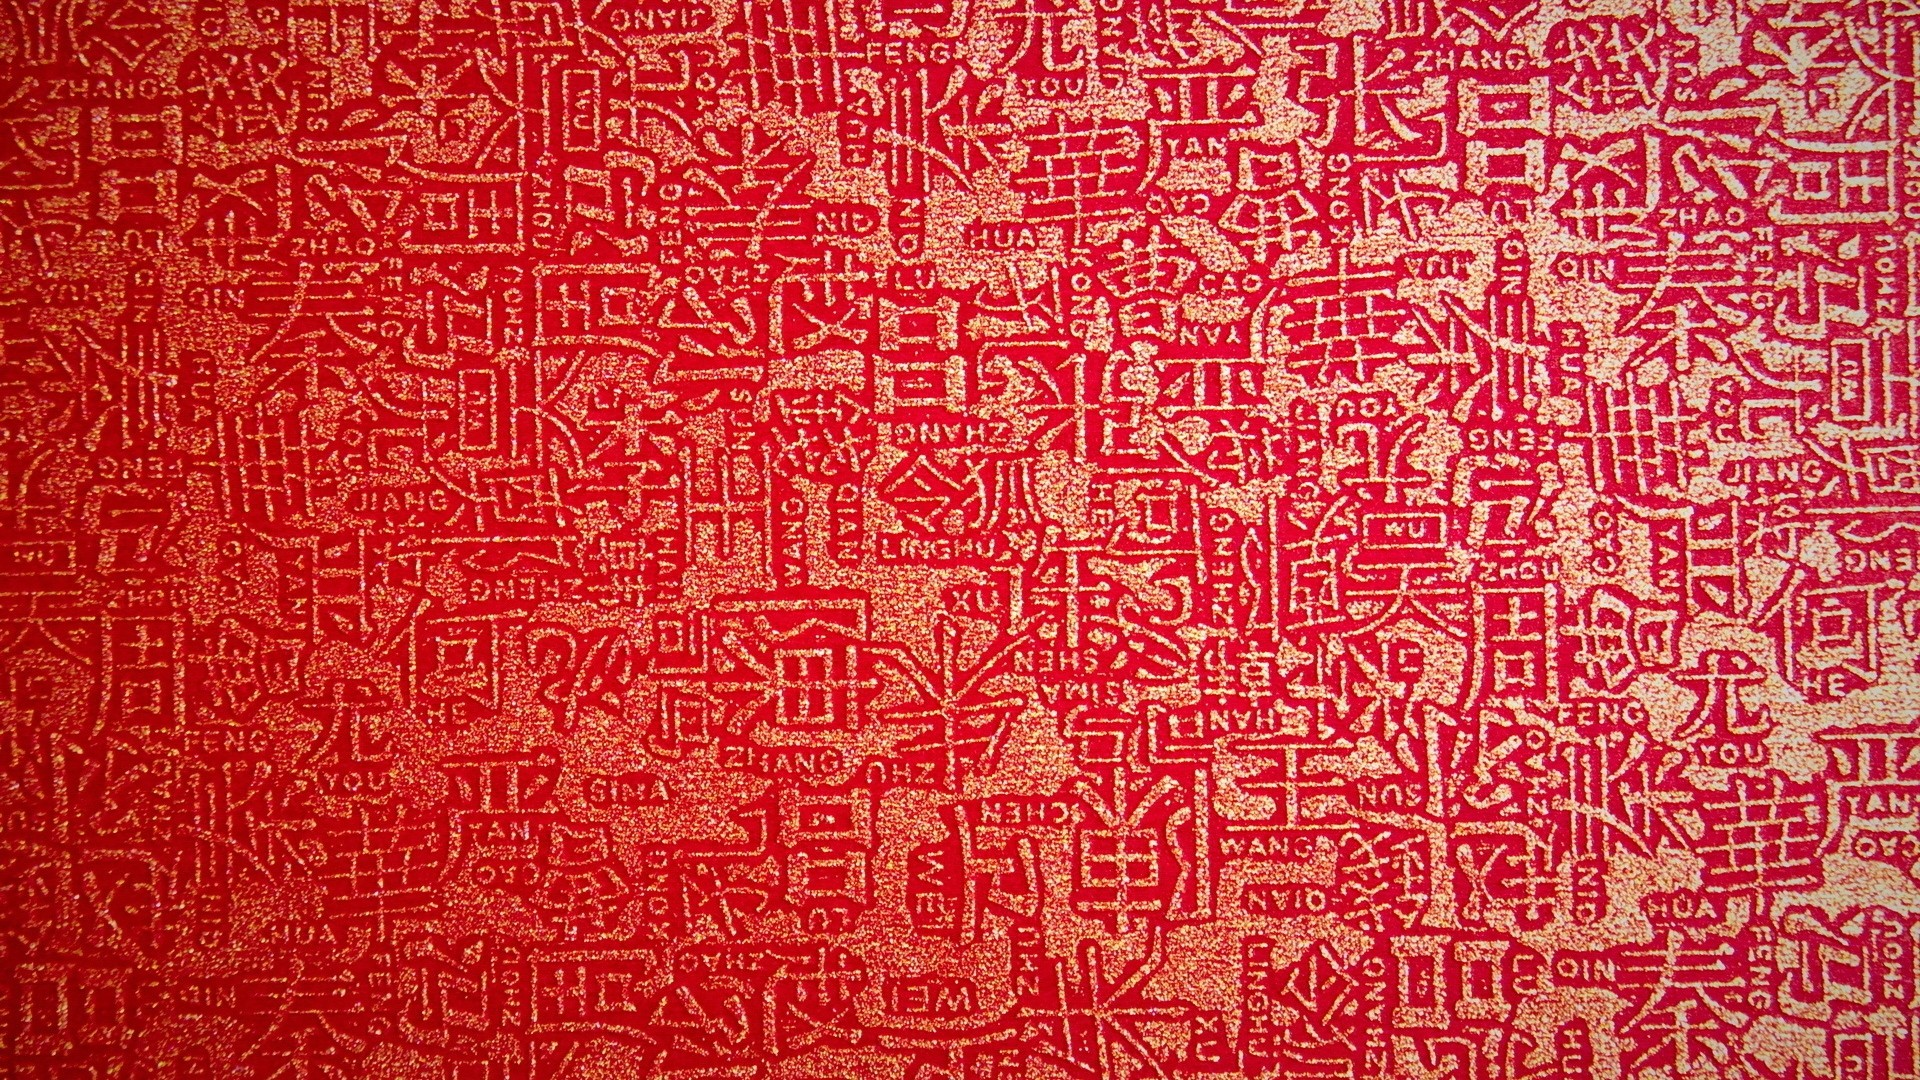 Wallpaper background, lettering, red, texture, characters, gold